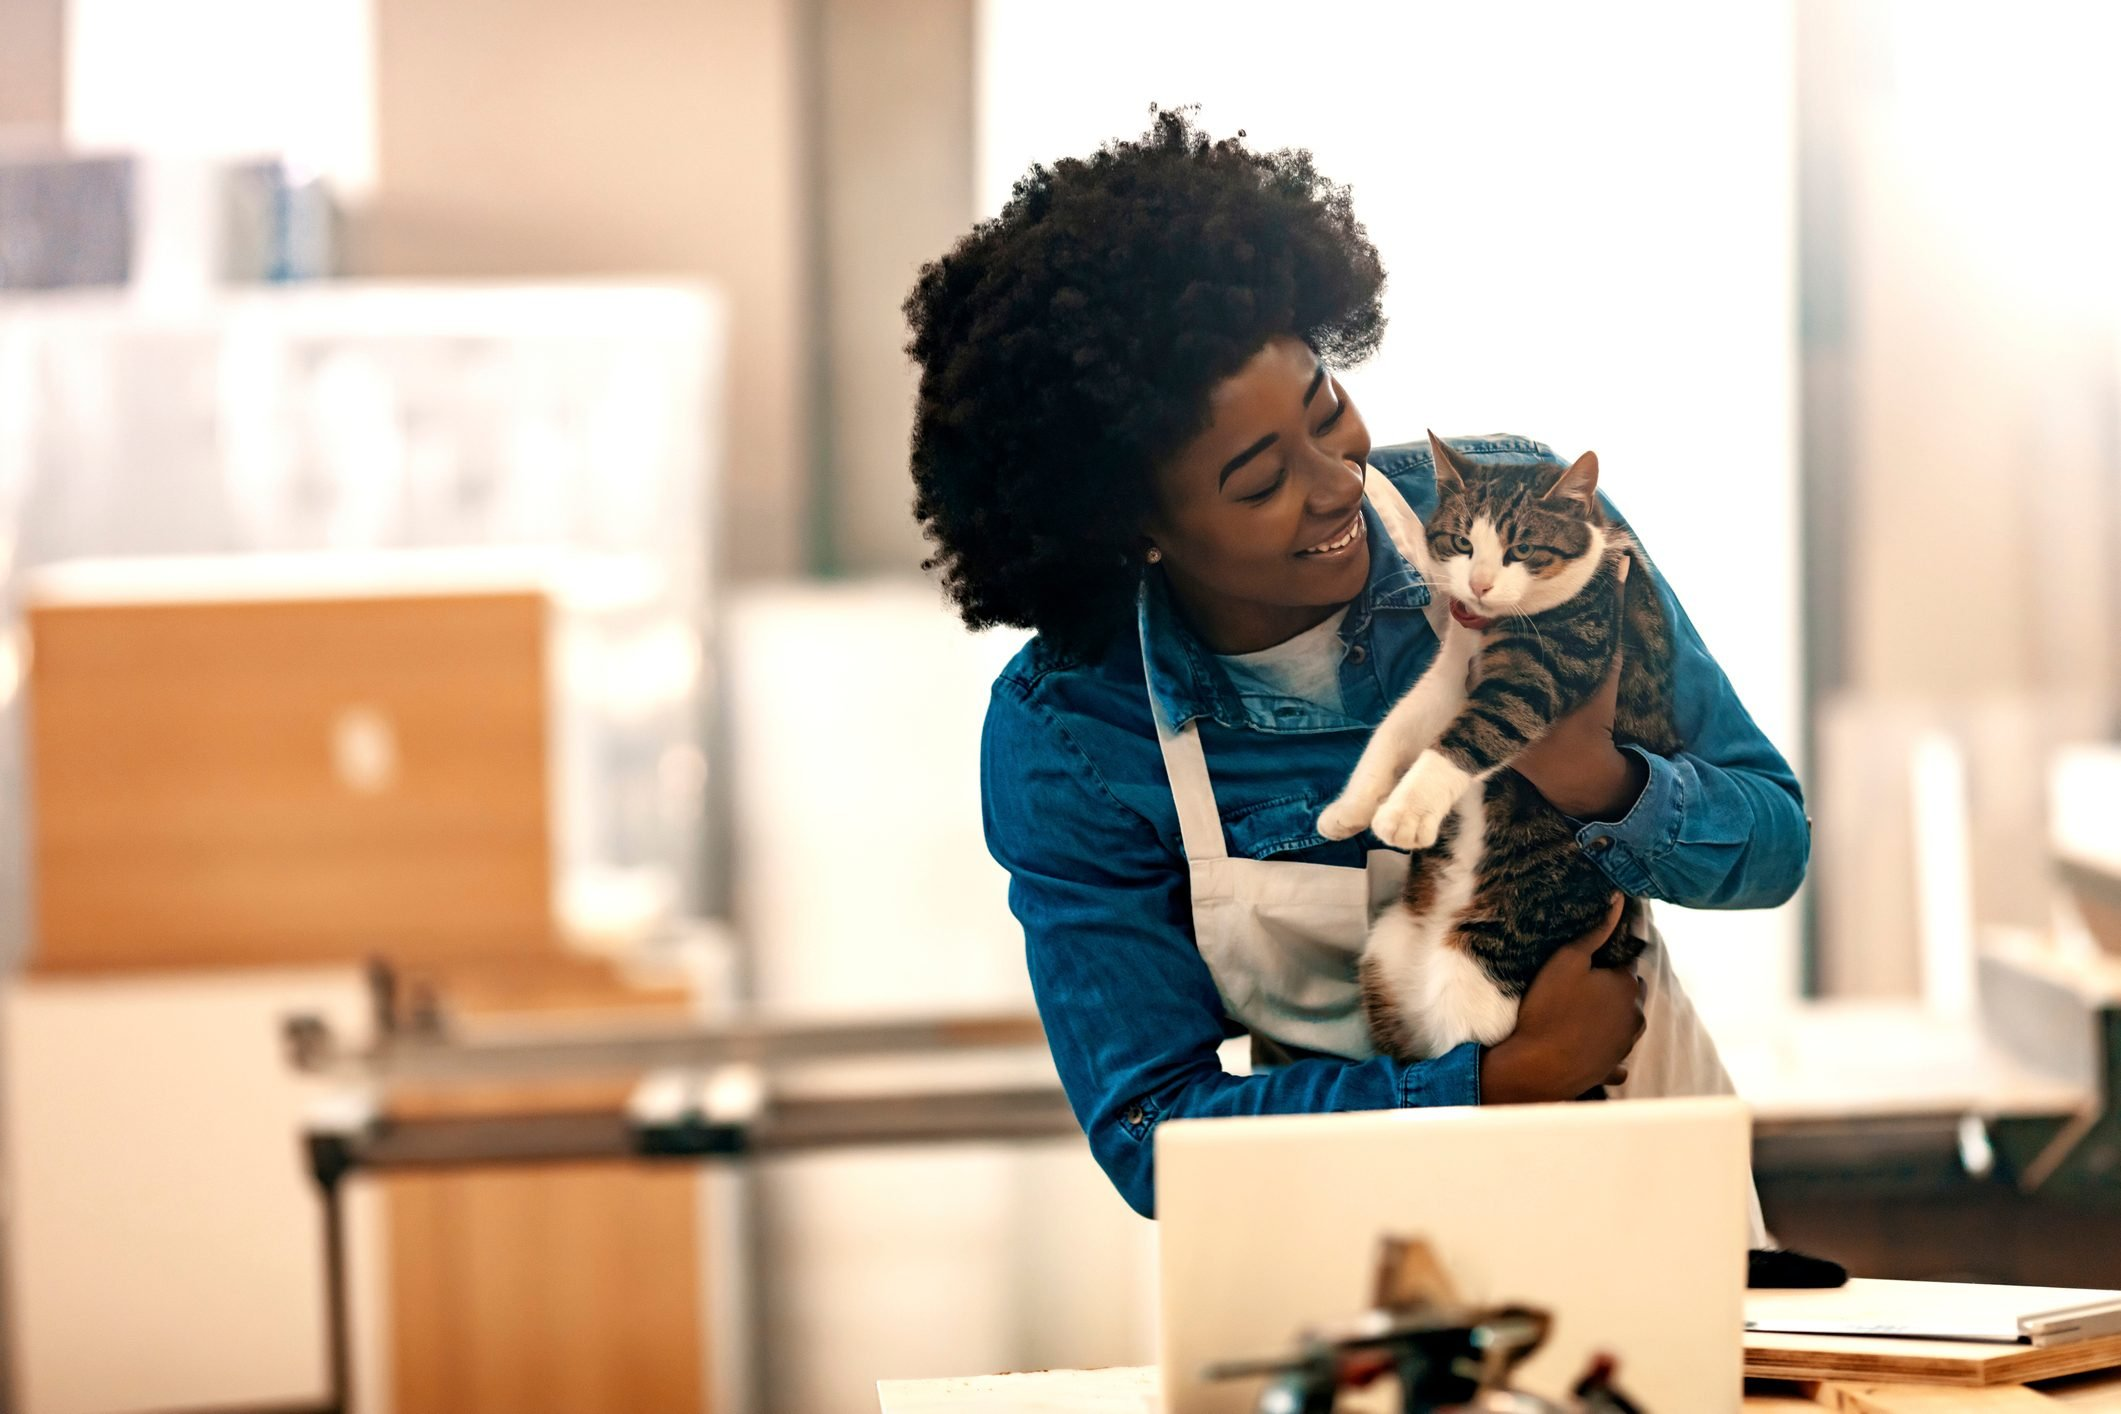 Smiling young woman with cat in workshop